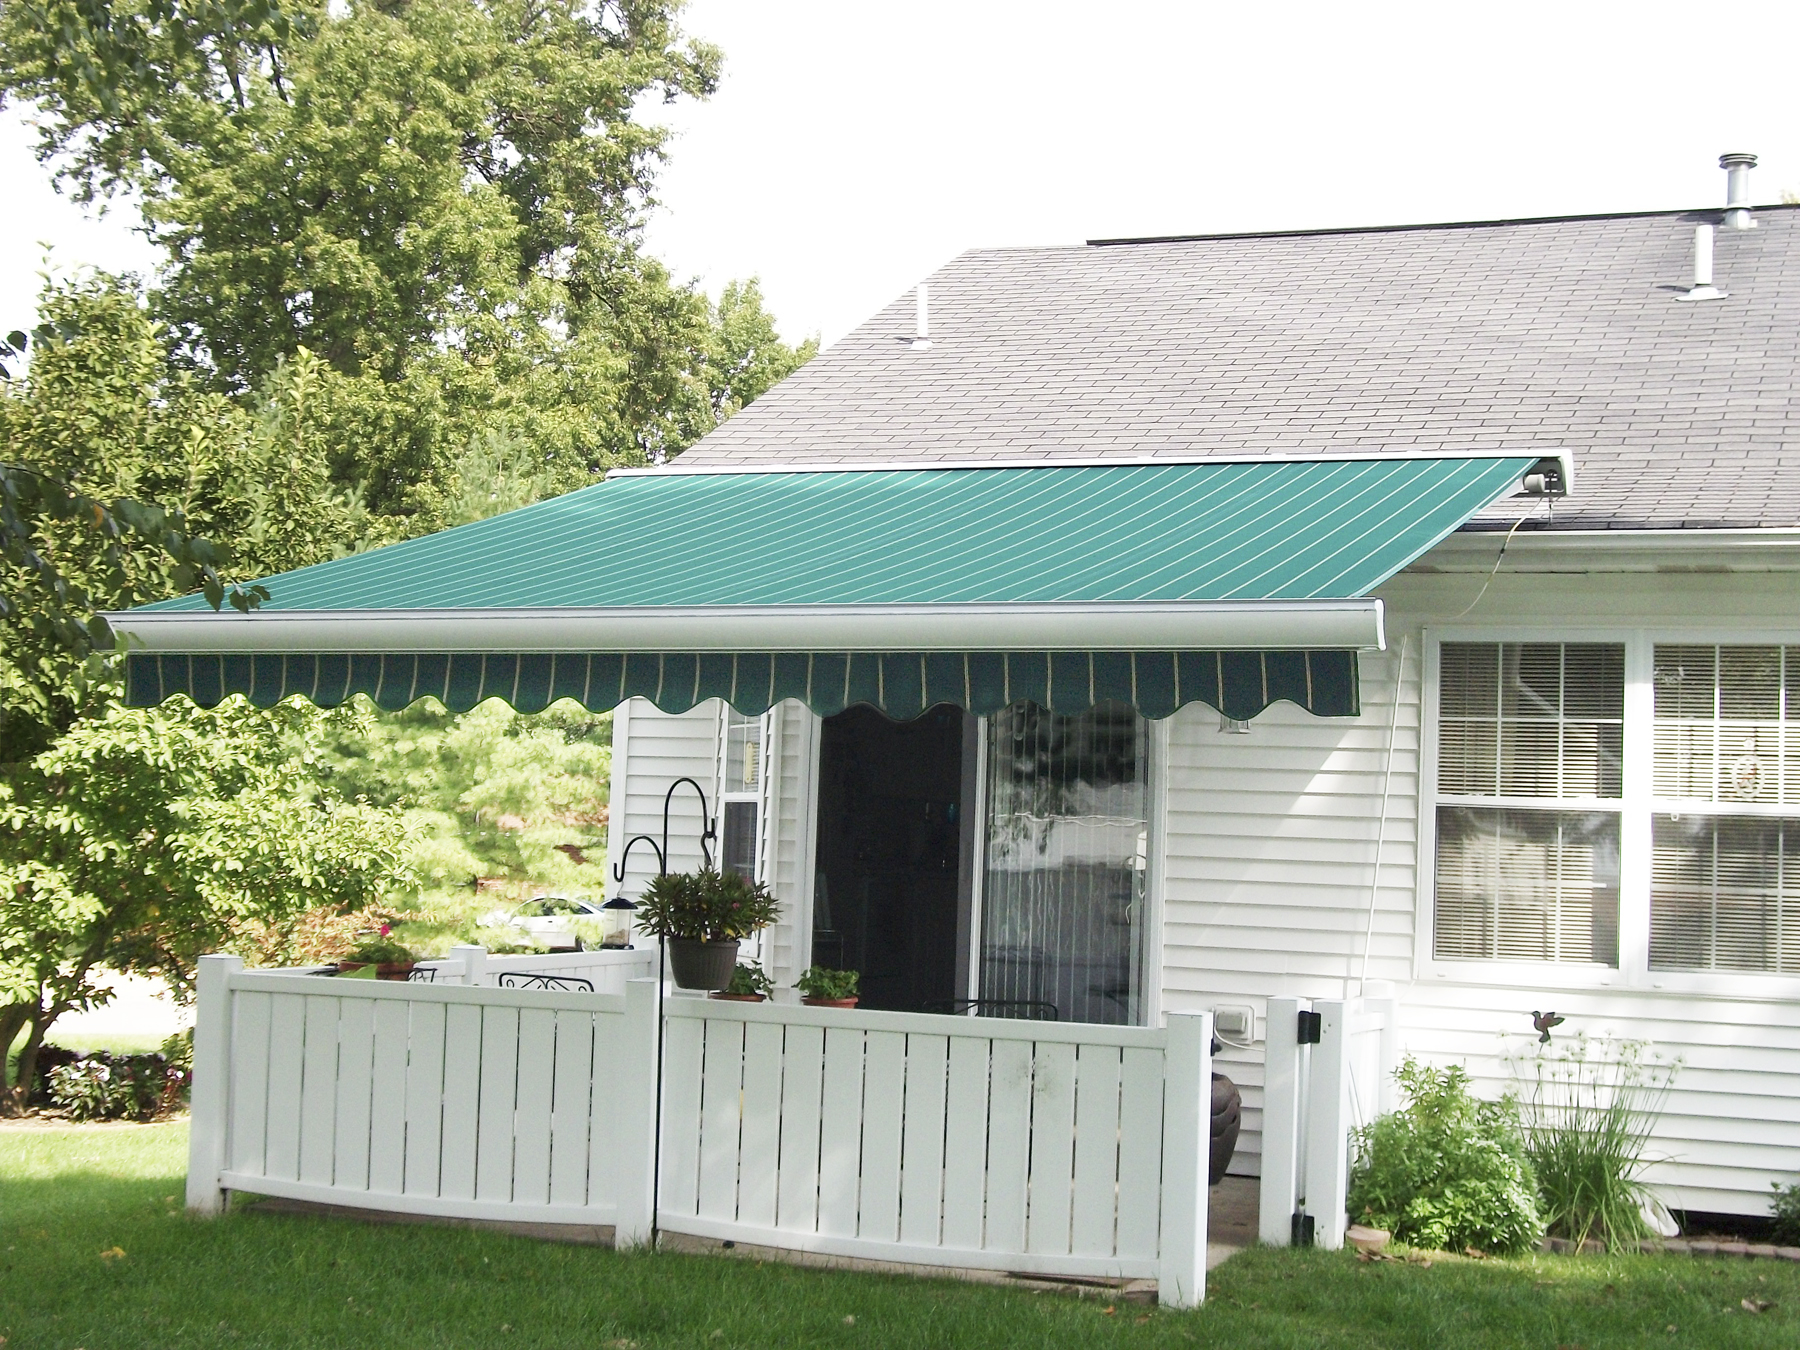 Awning mounted on roof